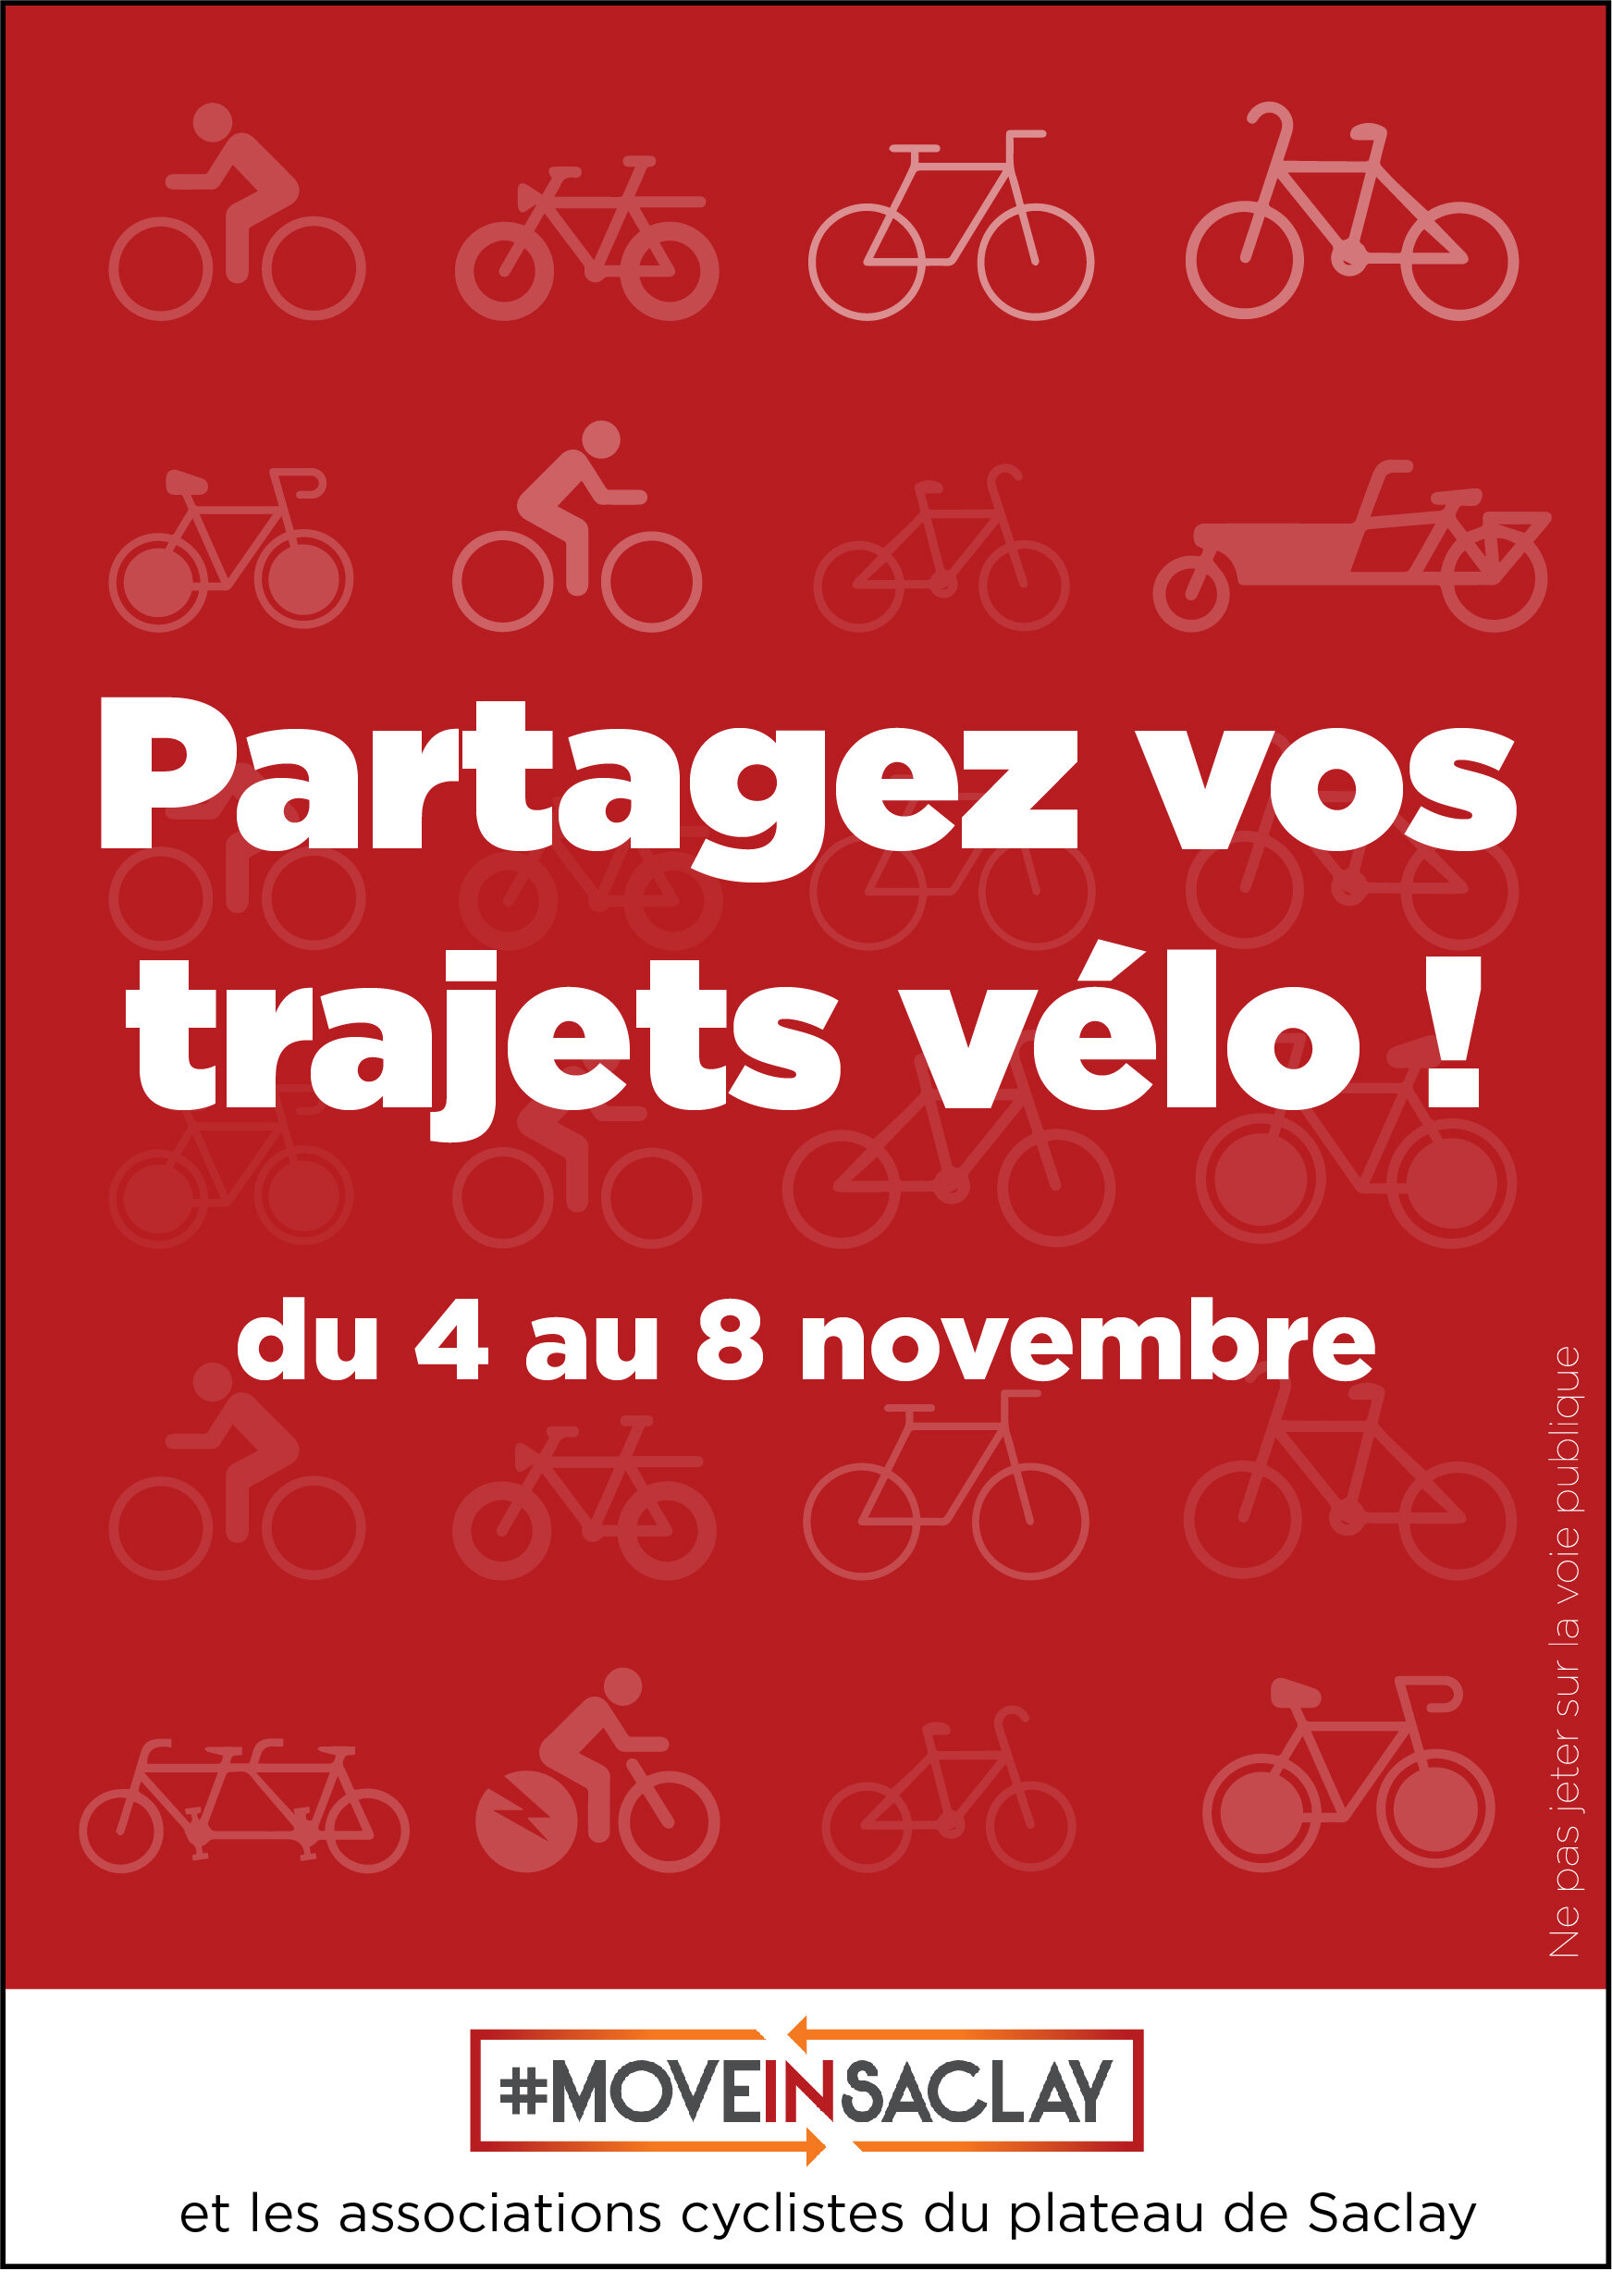 Evenement vélo Recto.jpg